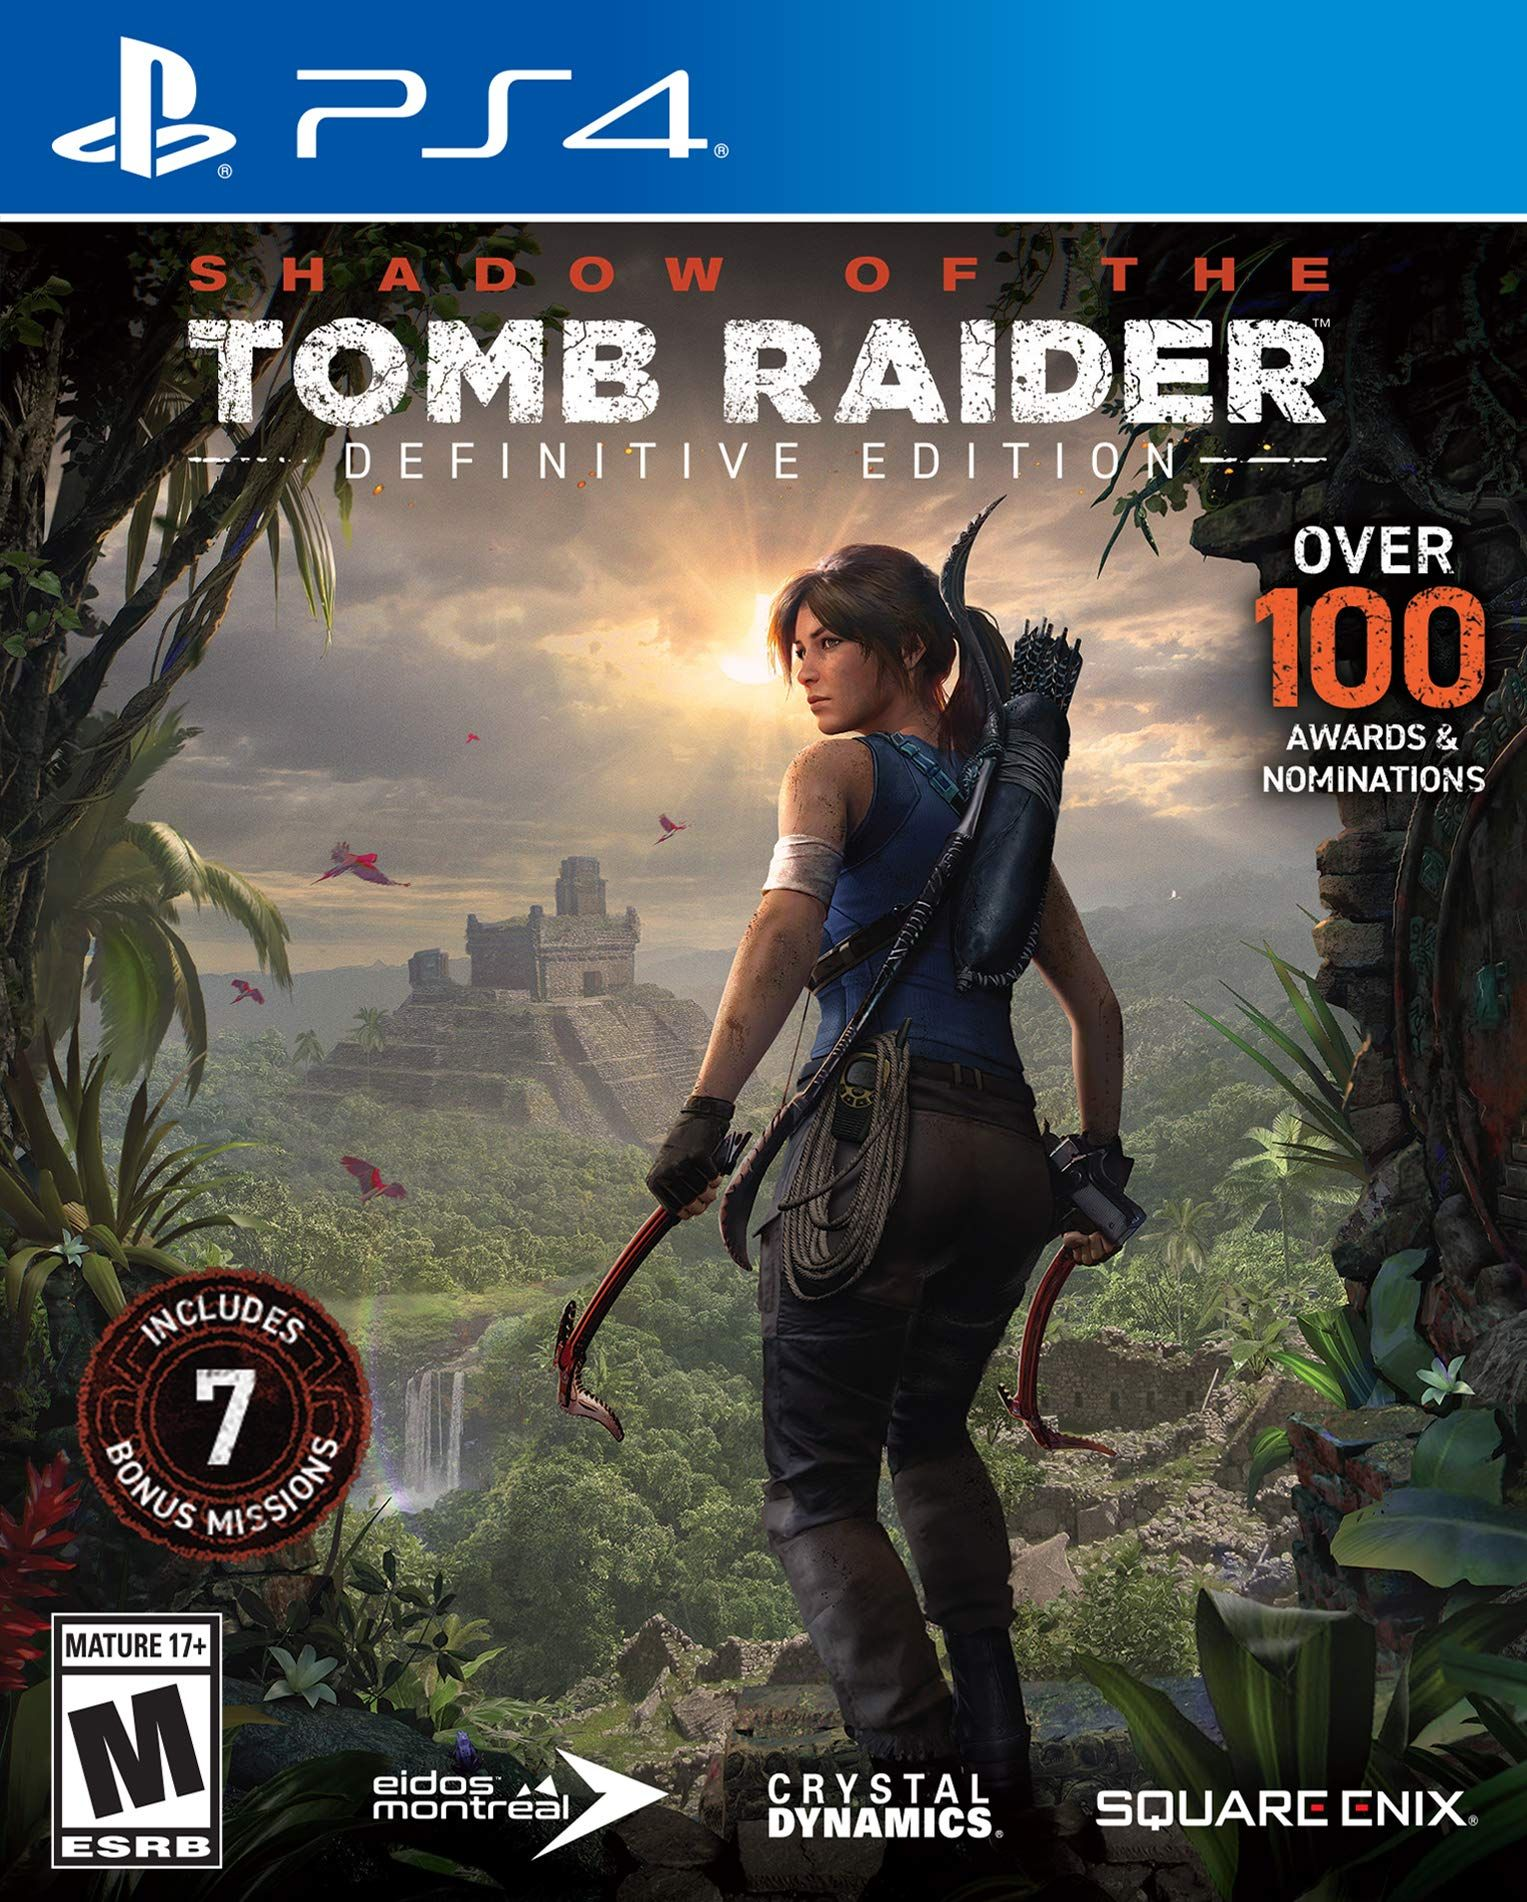 Shadow Of The Tomb Raider Definitive Edition Tomb Raider Tomb